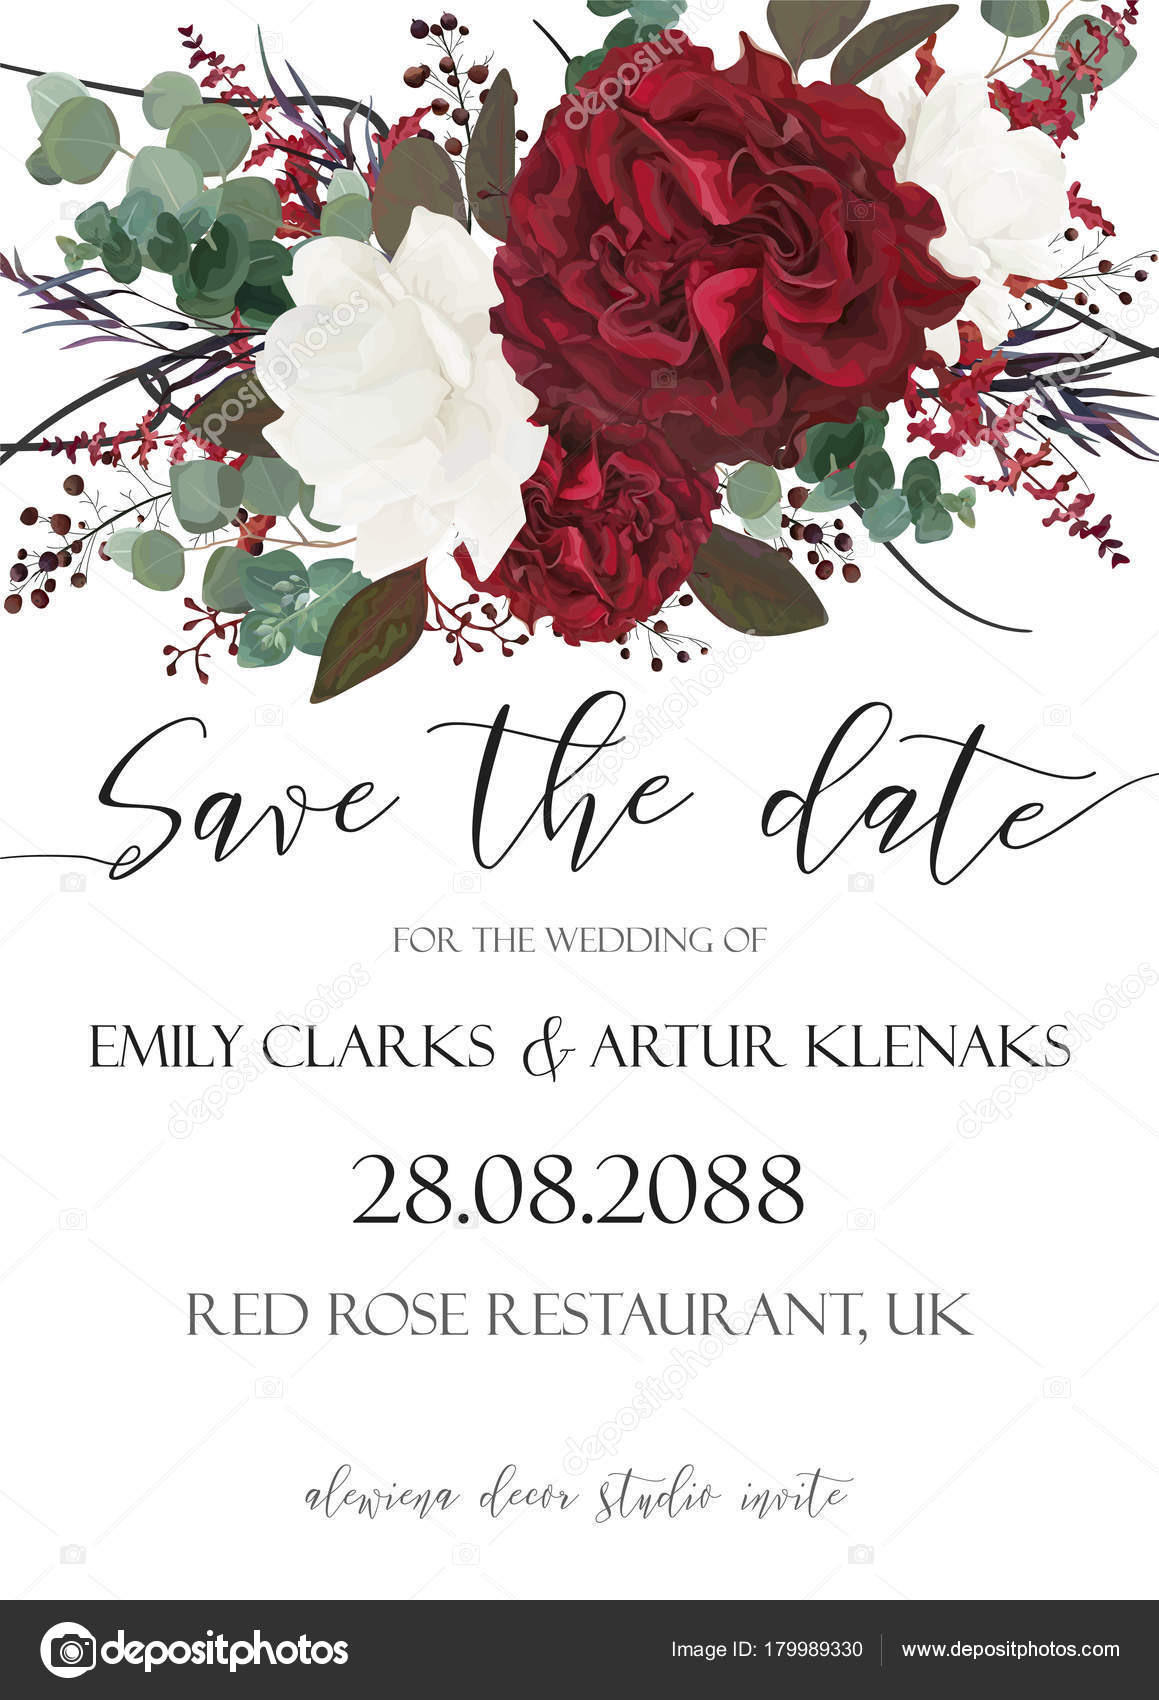 Wedding save the date, invite, invitation, card vector floral ...